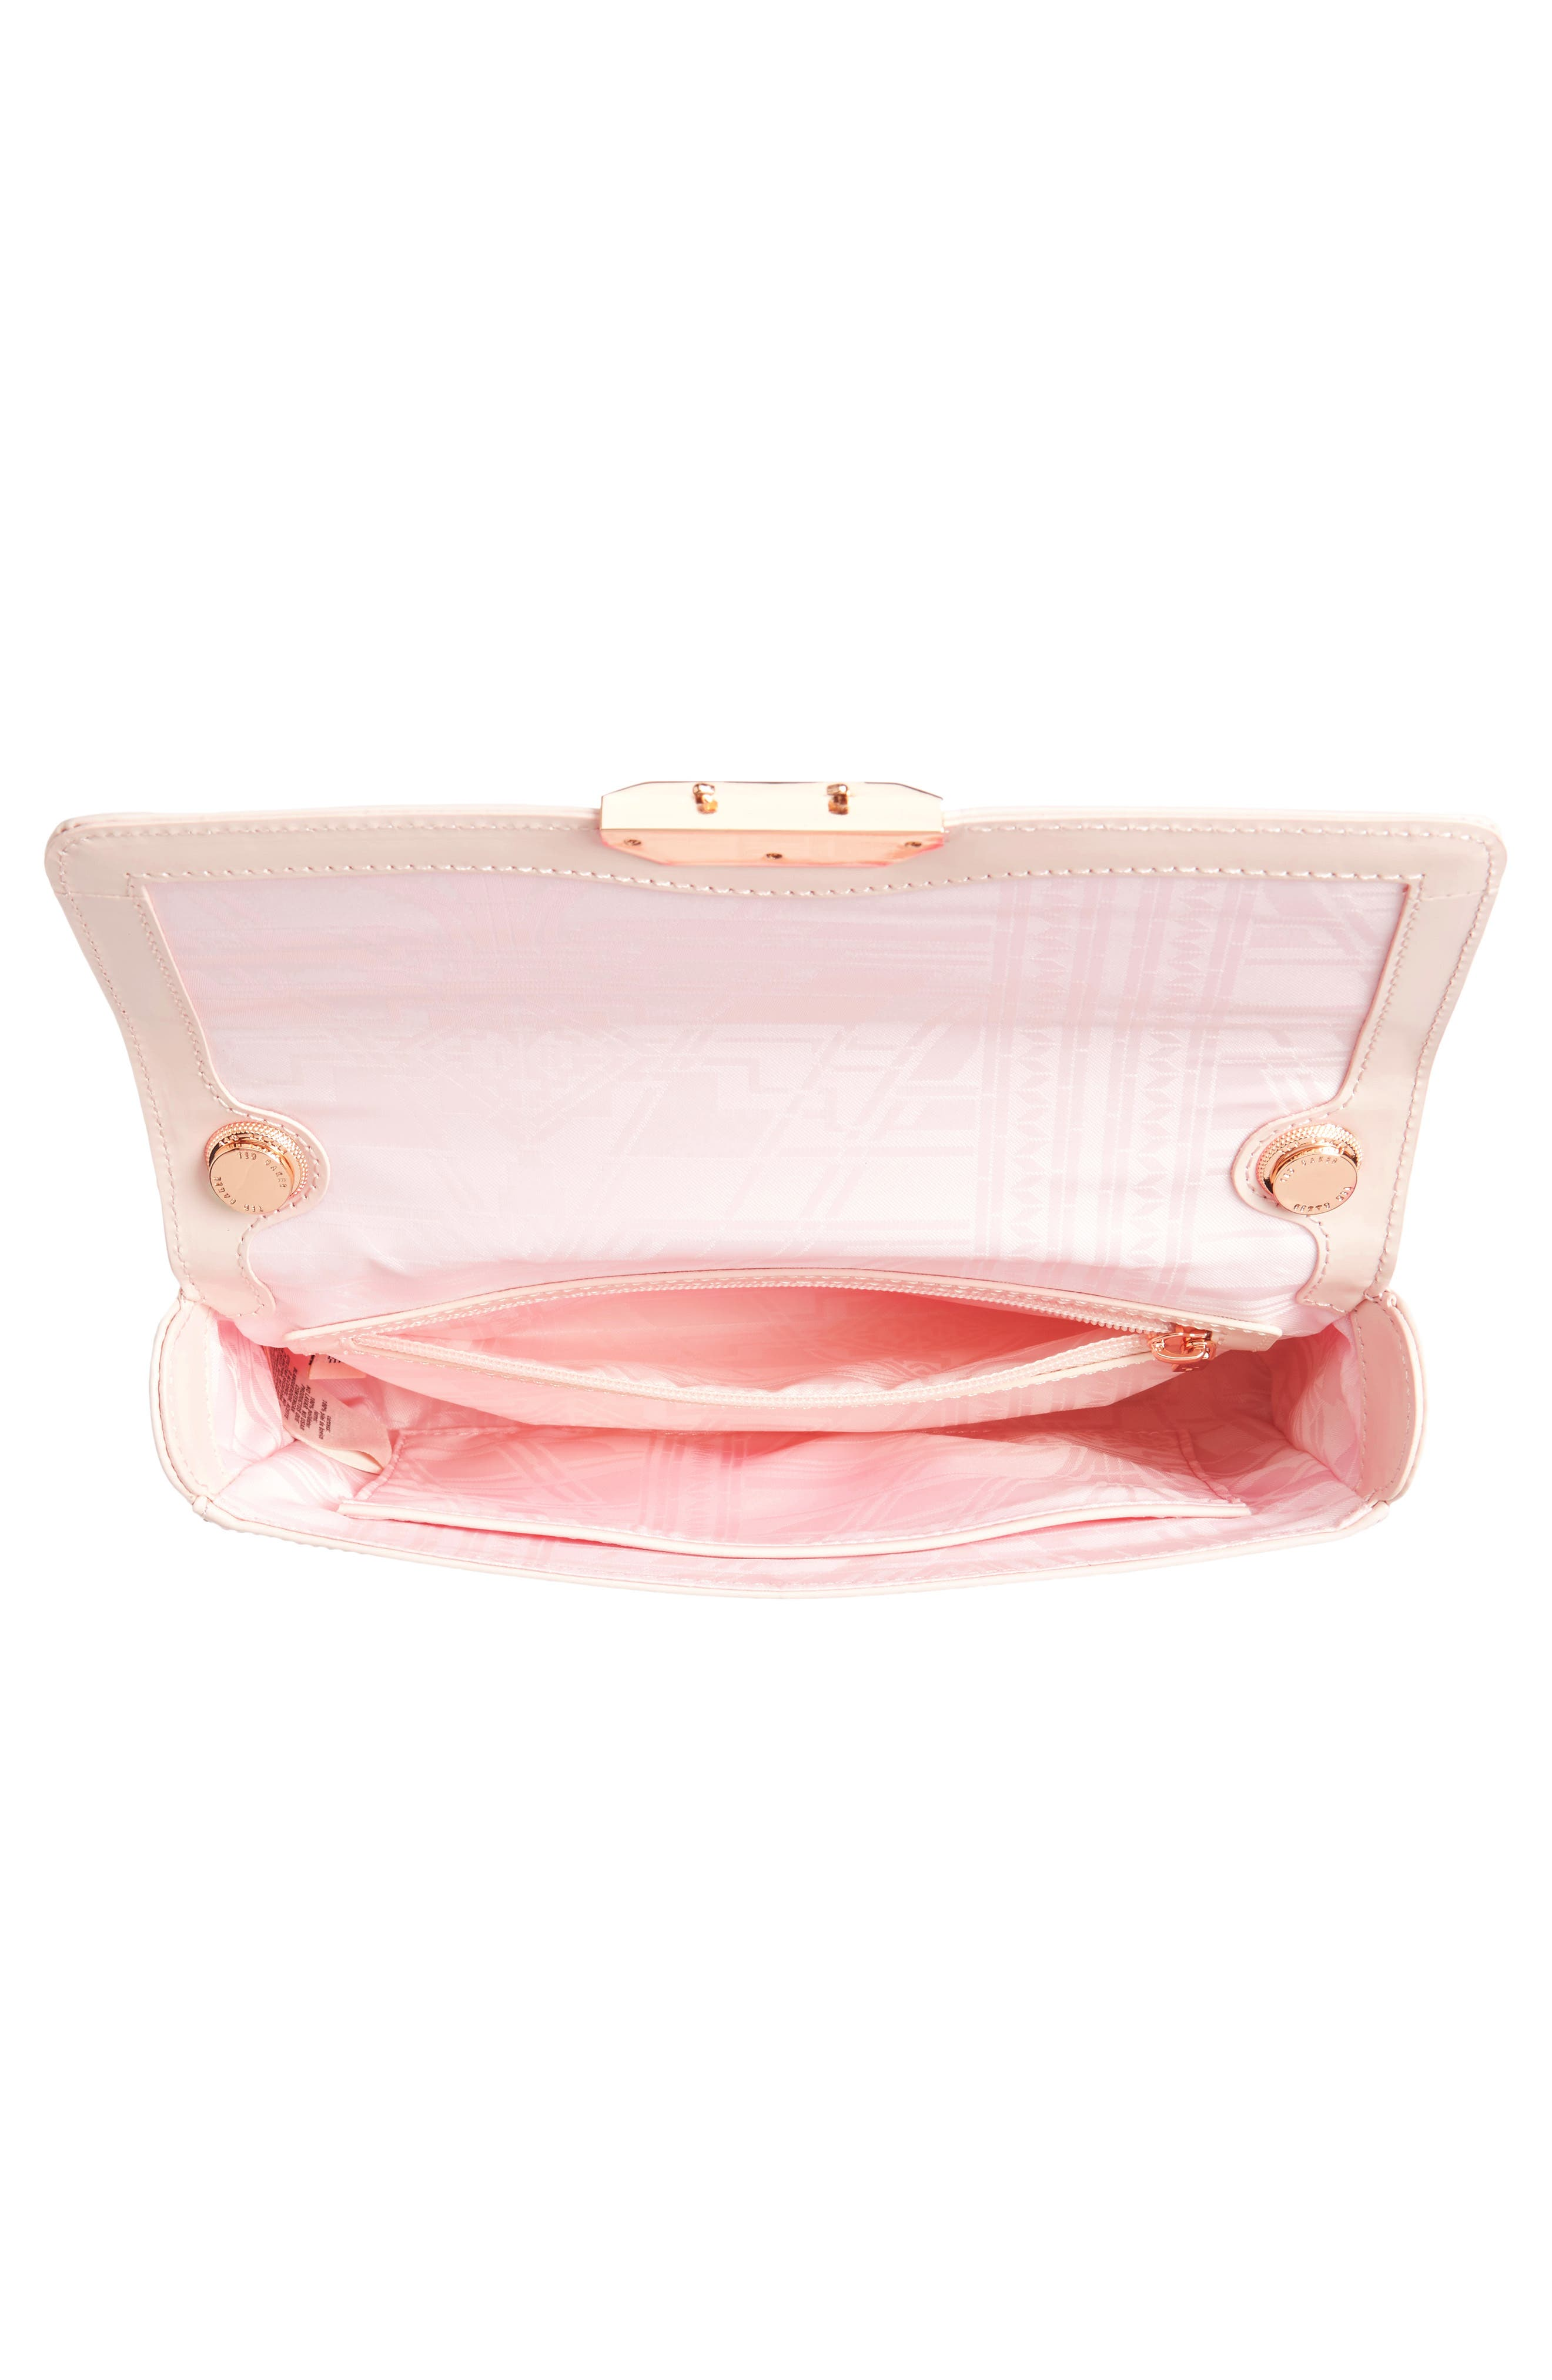 Alternate Image 3  - Ted Baker London Leather Crossbody Bag